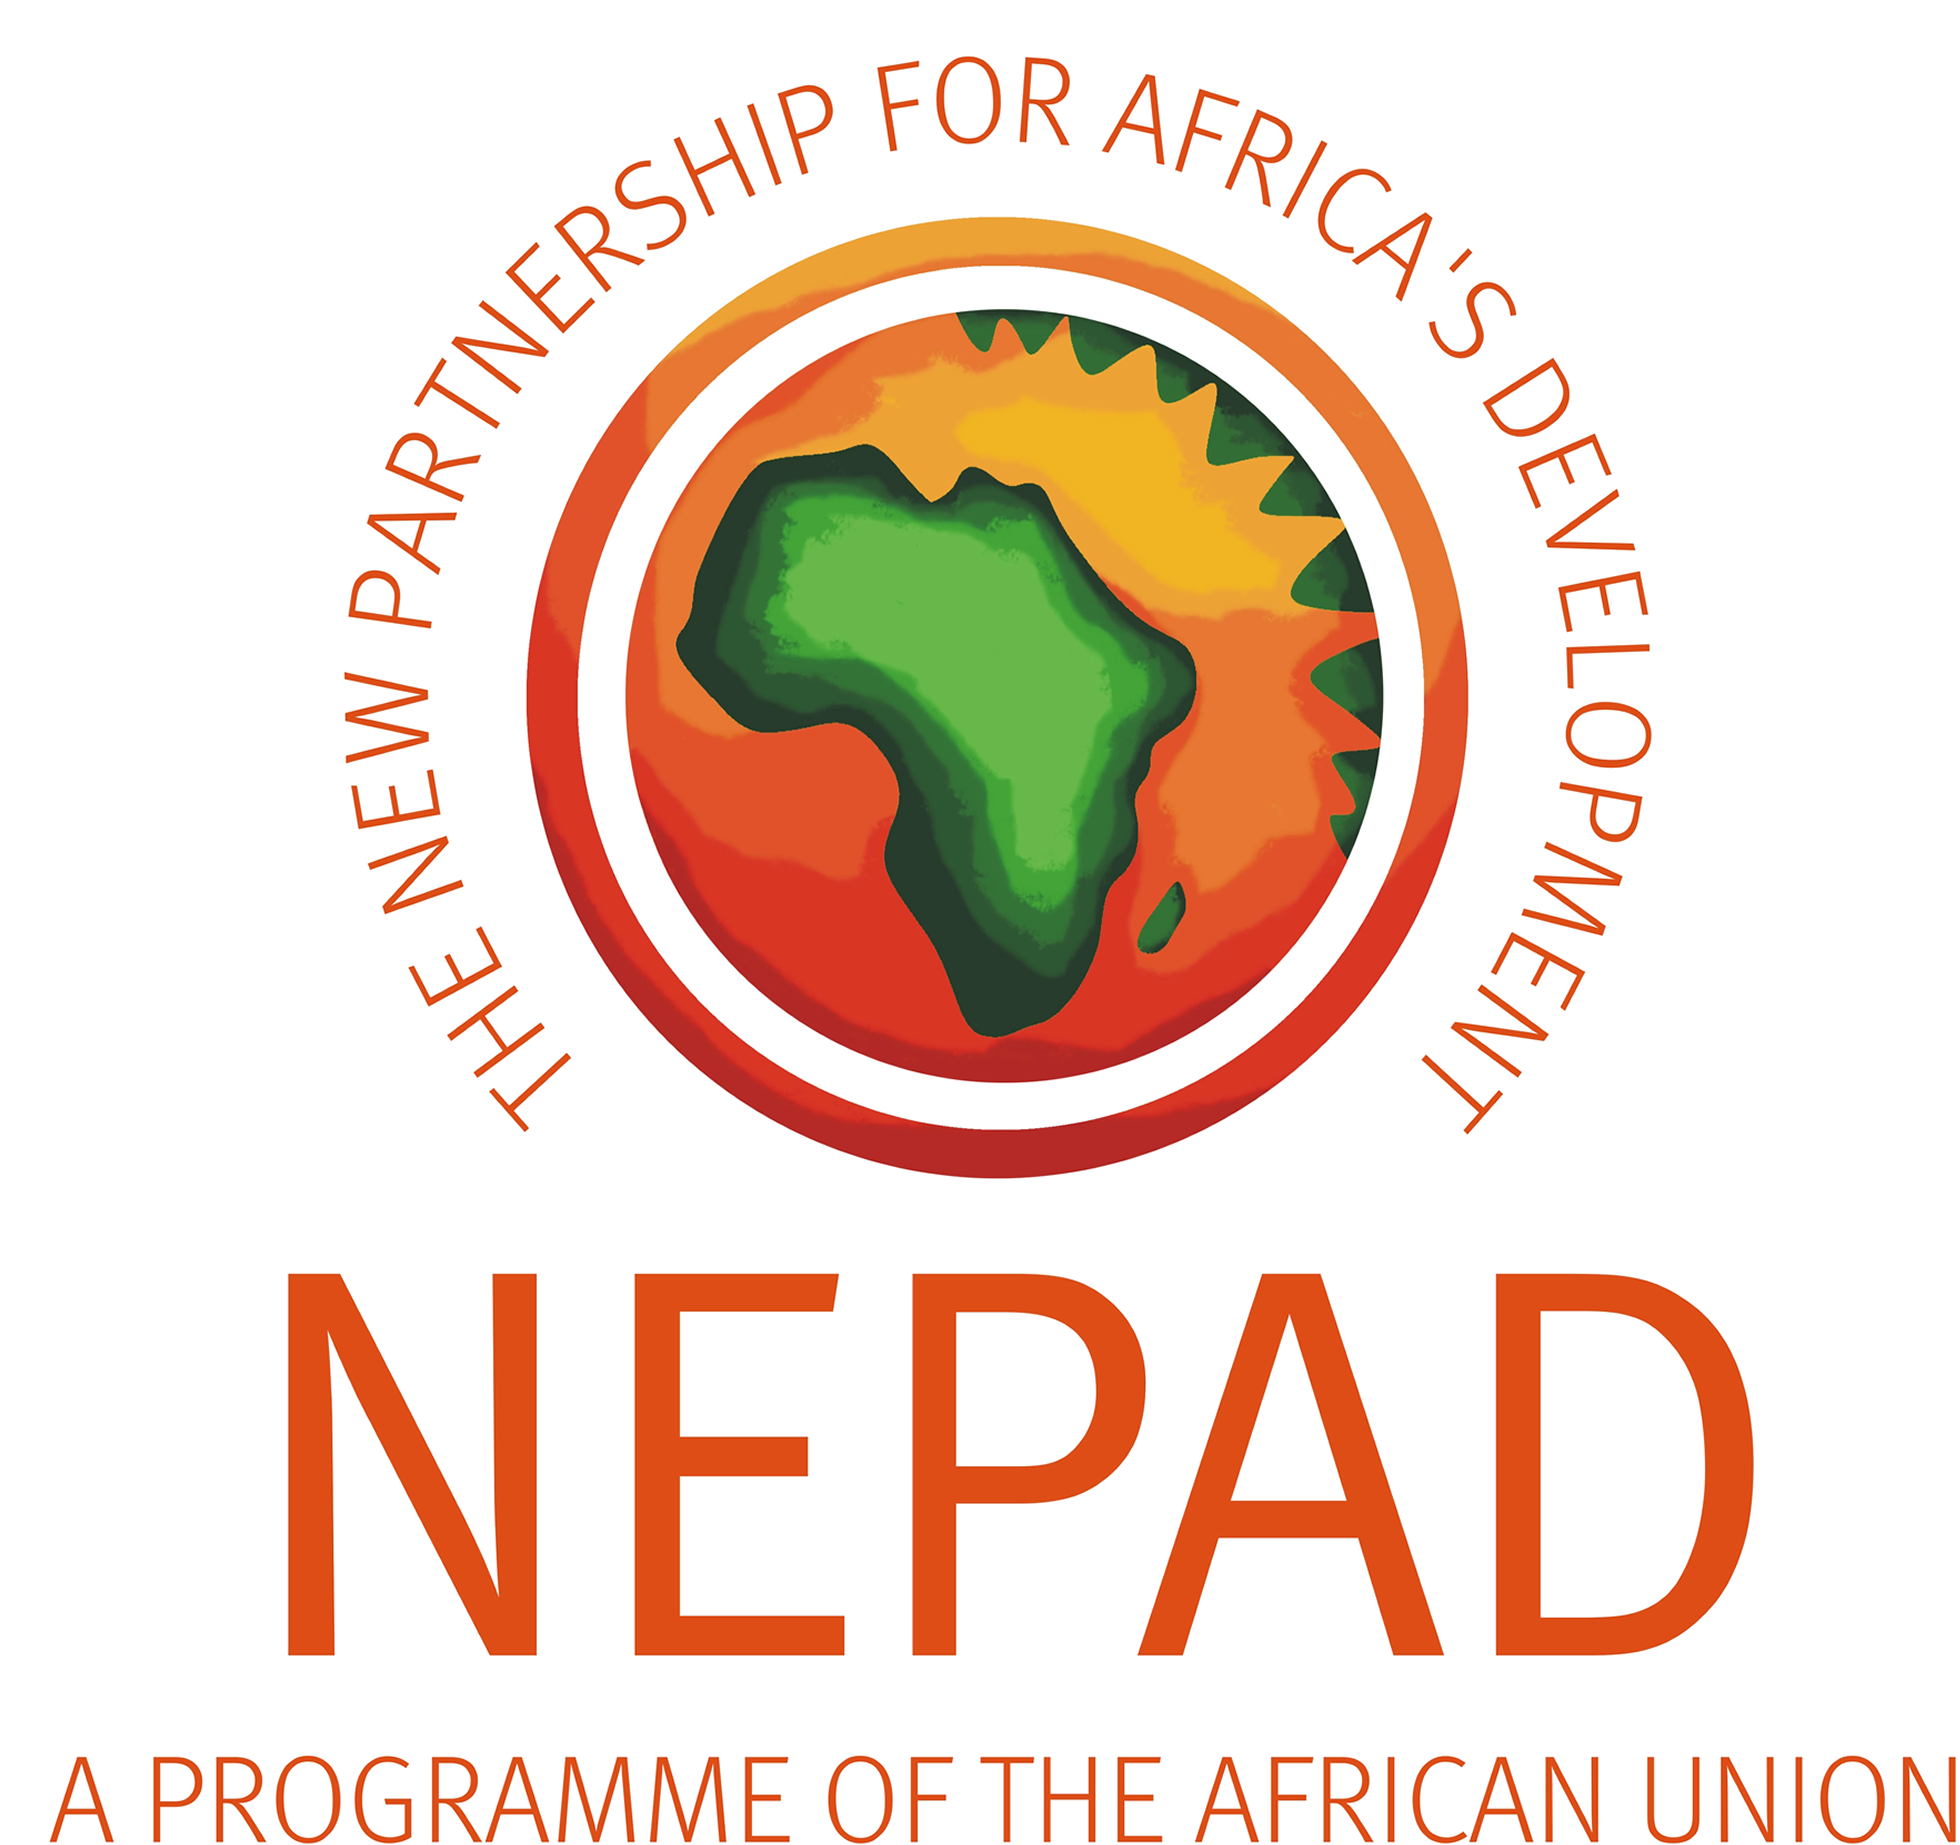 NEPAD to open office in Addis Ababa